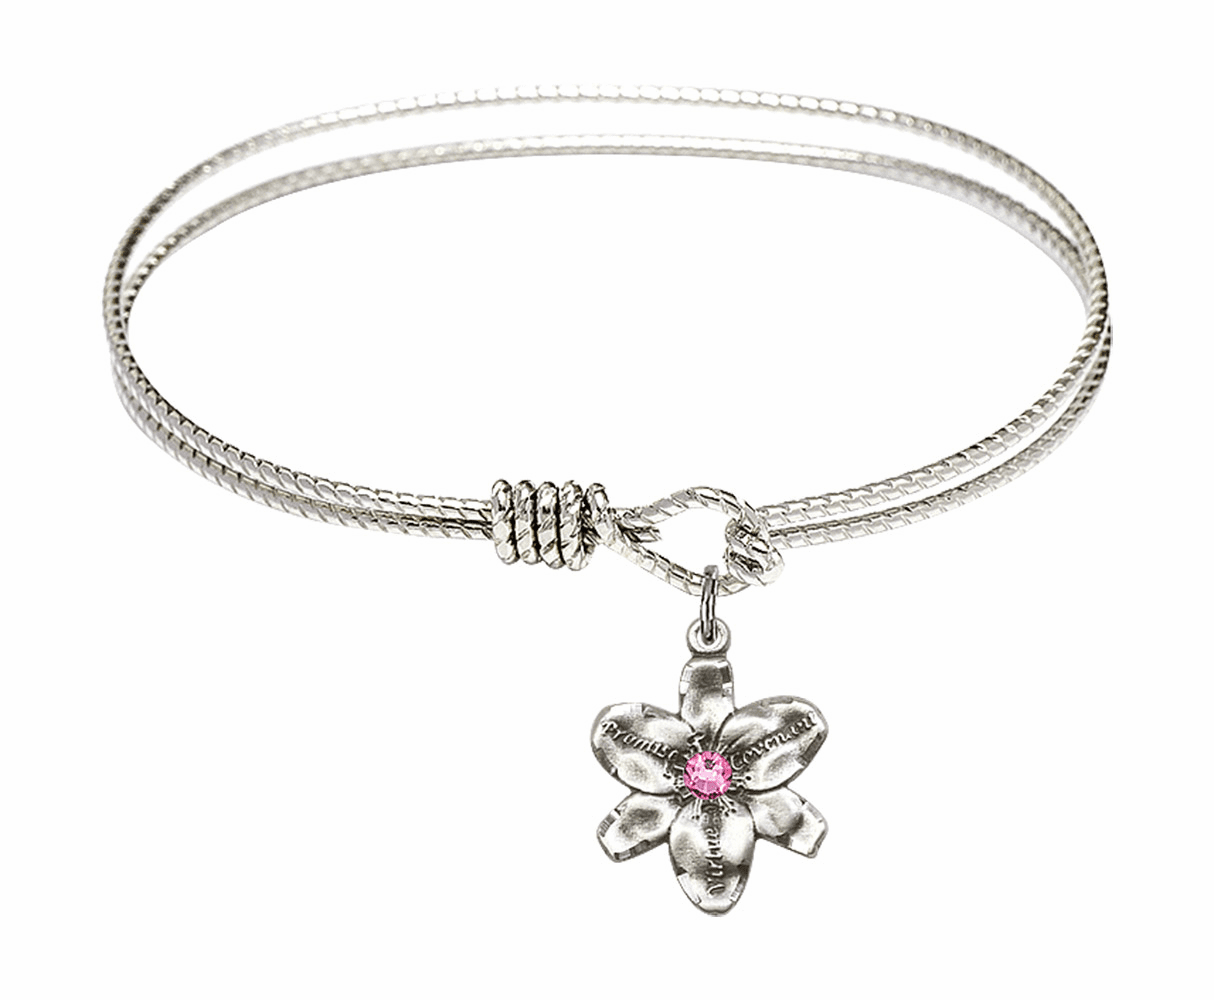 Textured Bangle Bracelet w/Rose Flower Chastity Charm by Bliss Mfg